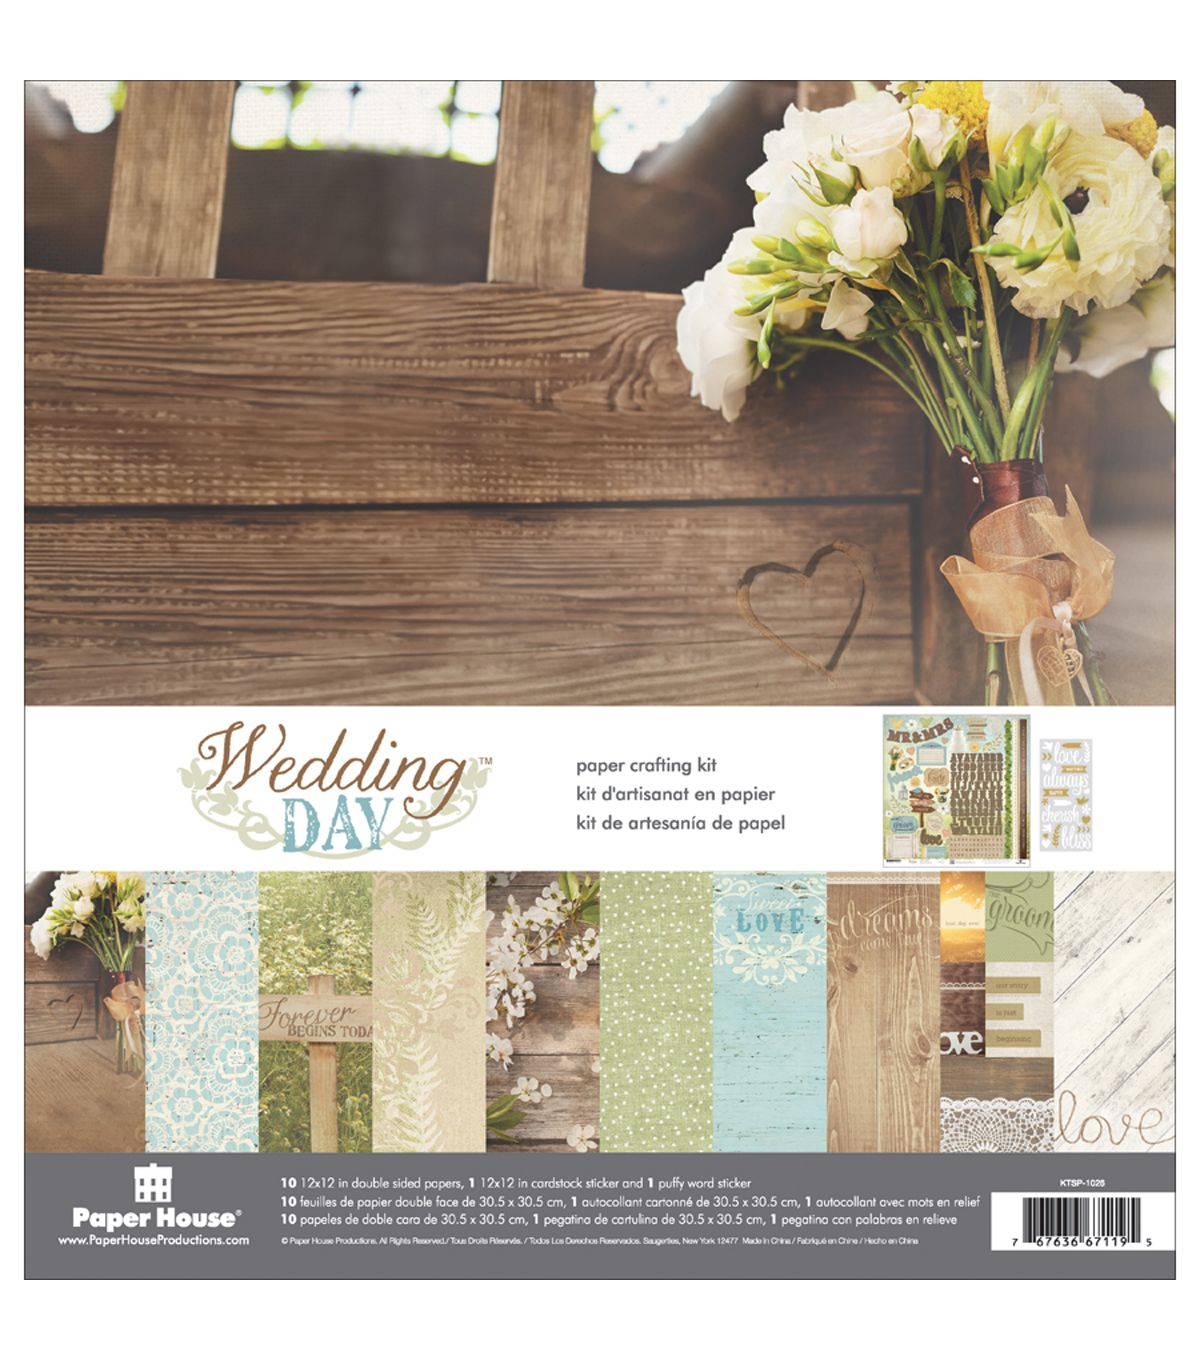 12x12 wedding scrapbook paper - Paper House Paper Crafting Kit Wedding Day